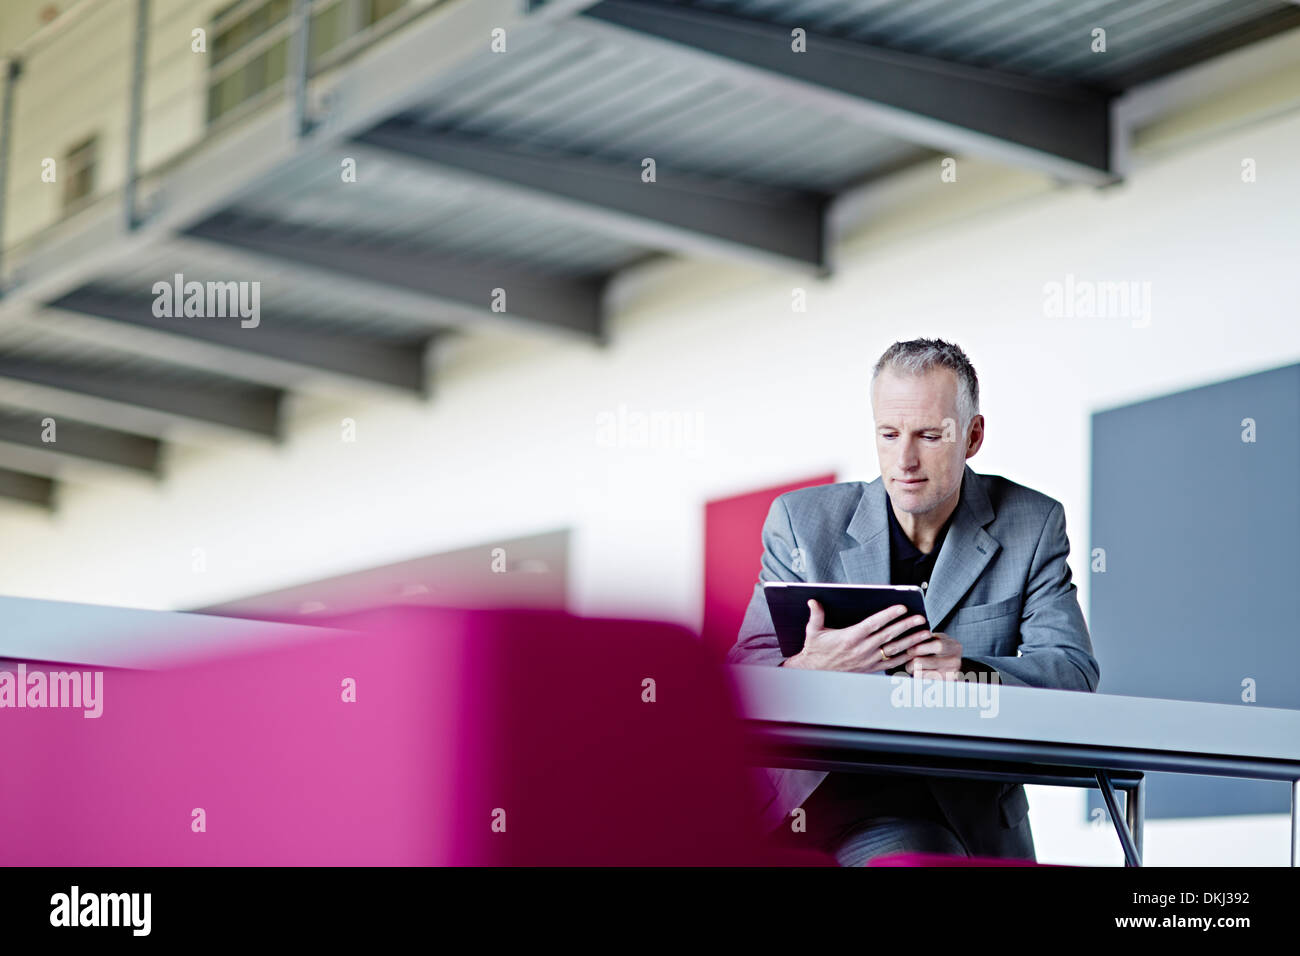 Businessman using digital tablet in lobby - Stock Image